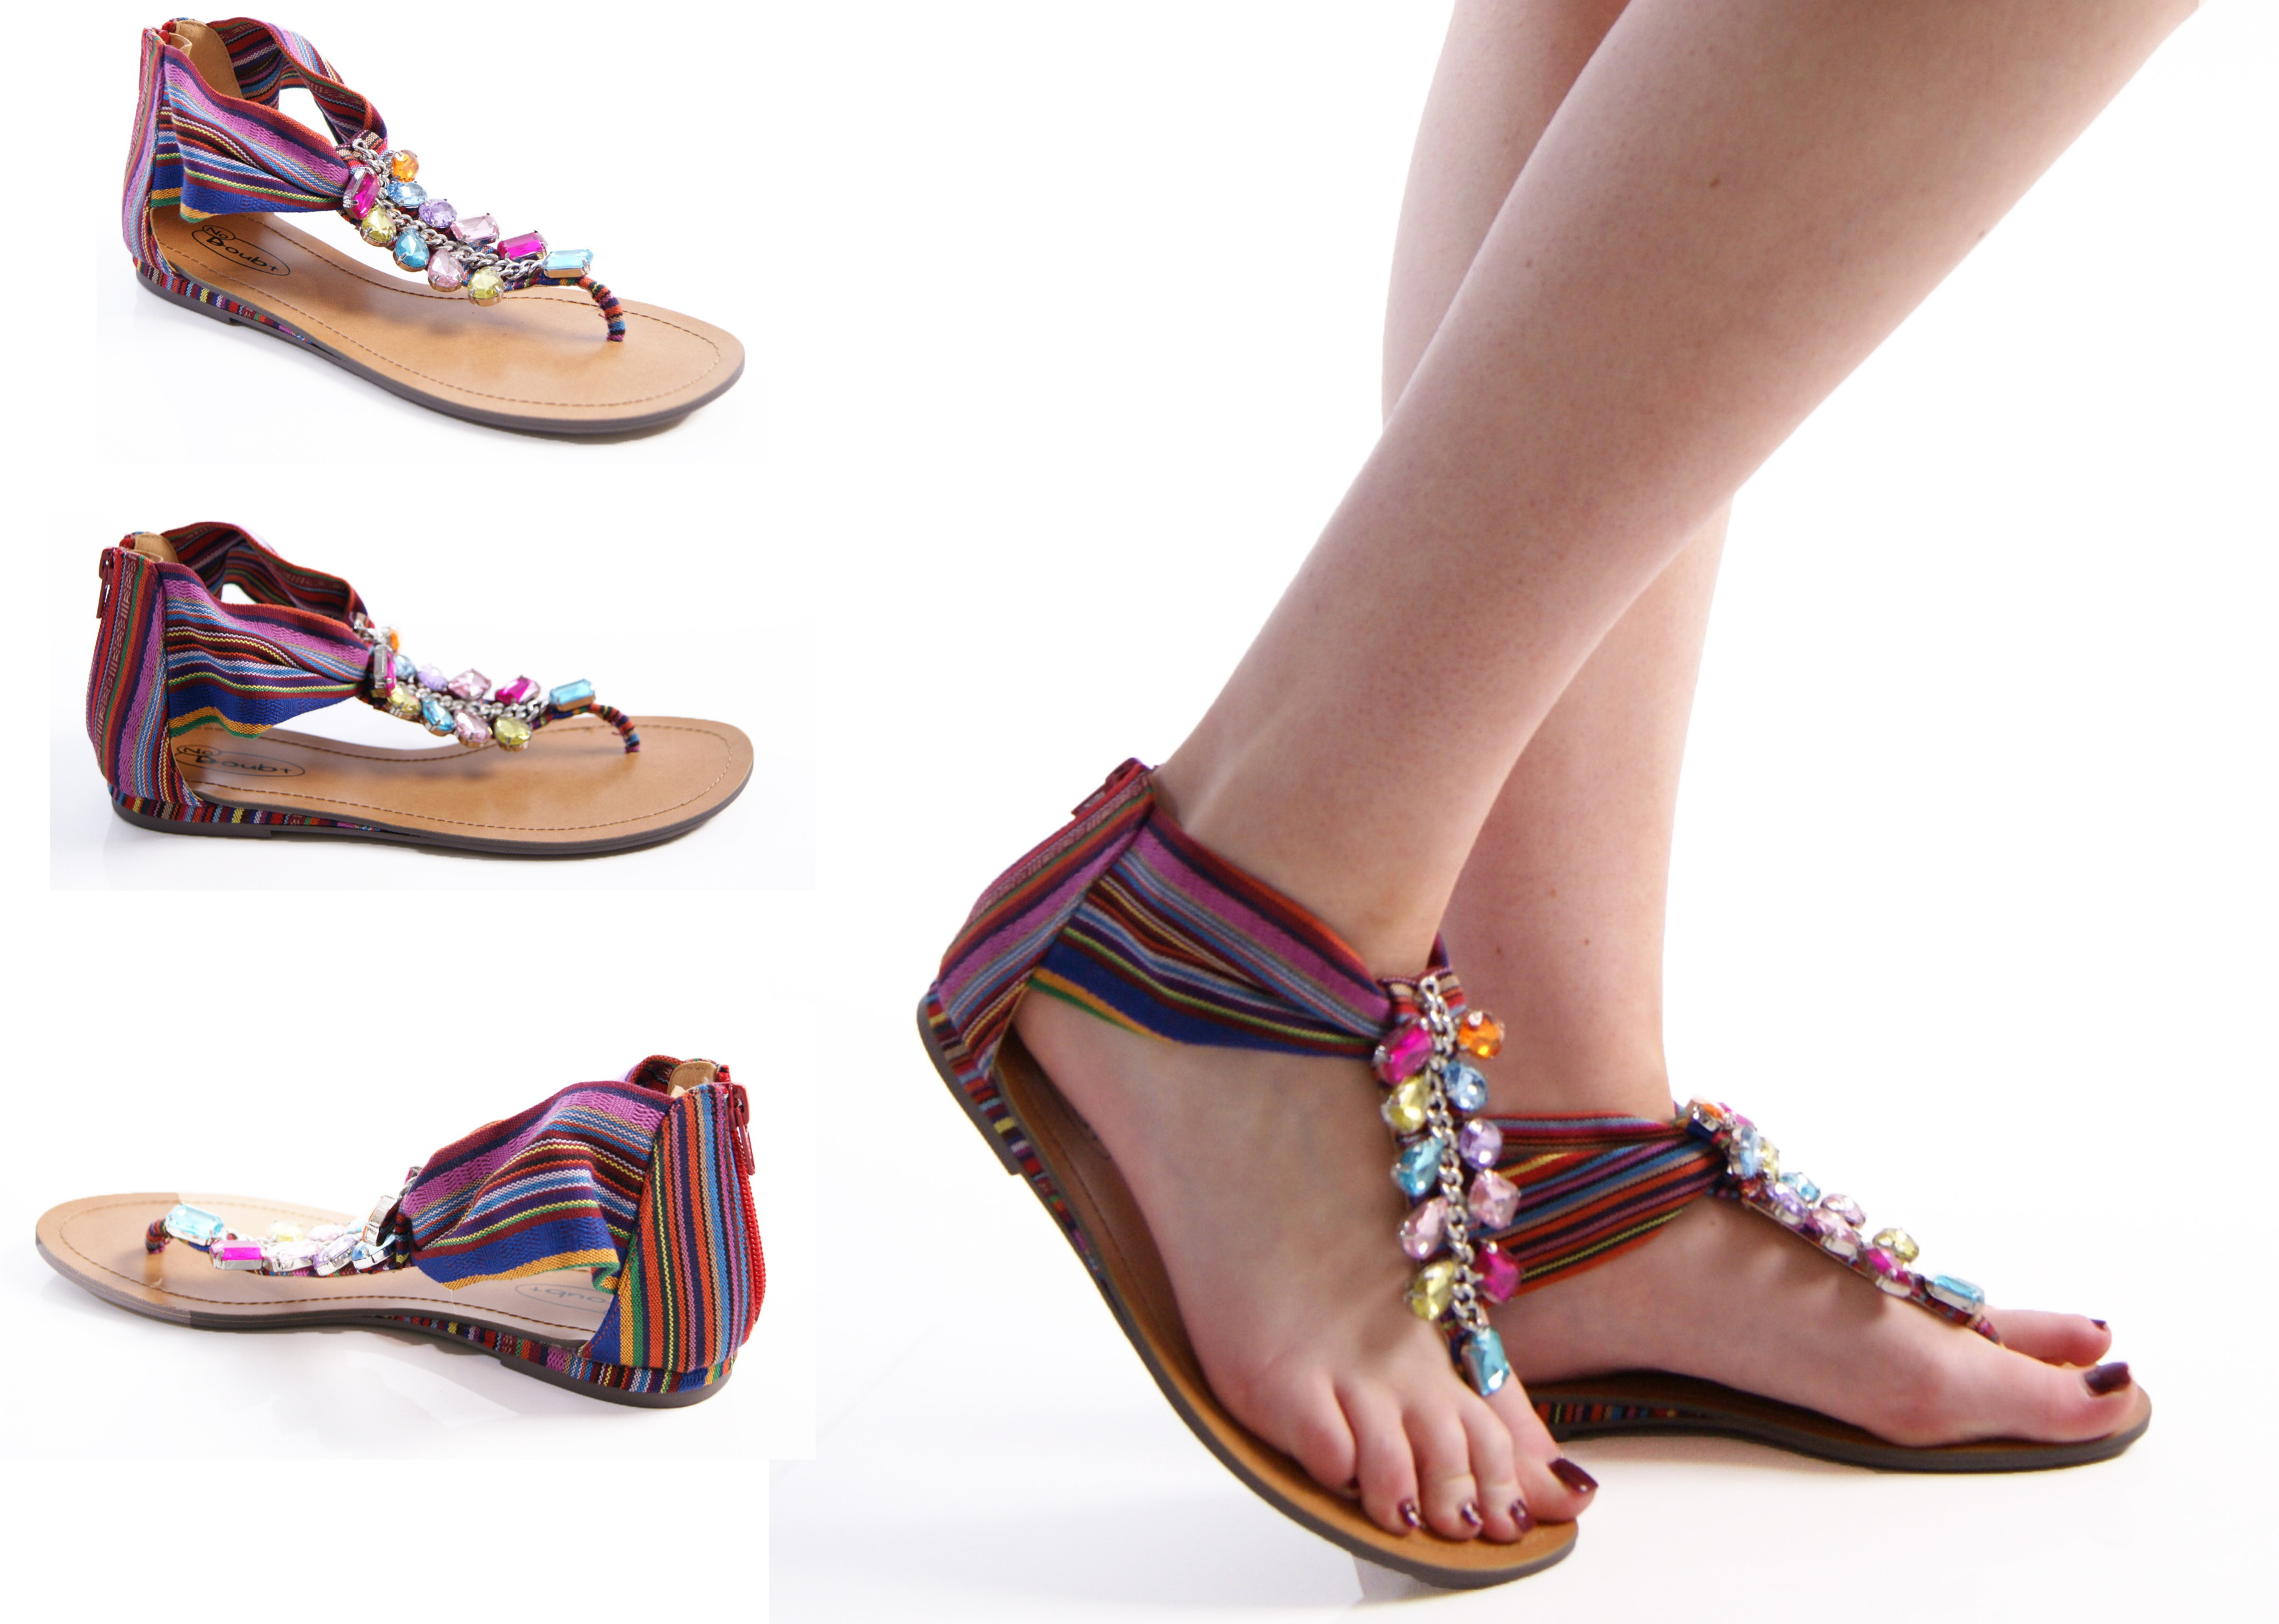 LADIES WOMENS SUMMER SANDALS HOLIDAY TOE POST FLAT FASHION ...